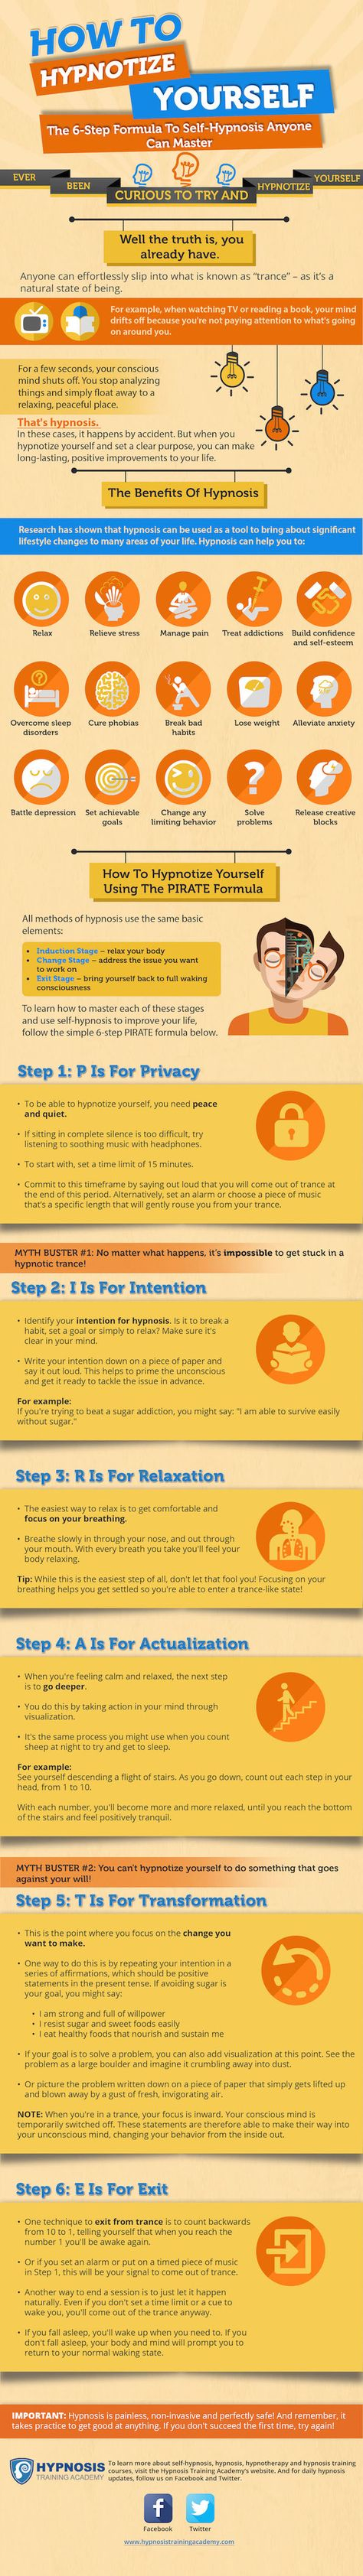 Interested in learning how to hypnotize yourself? Learn the easy 6-step formula to self-hypnosis anyone can master in this infographic.